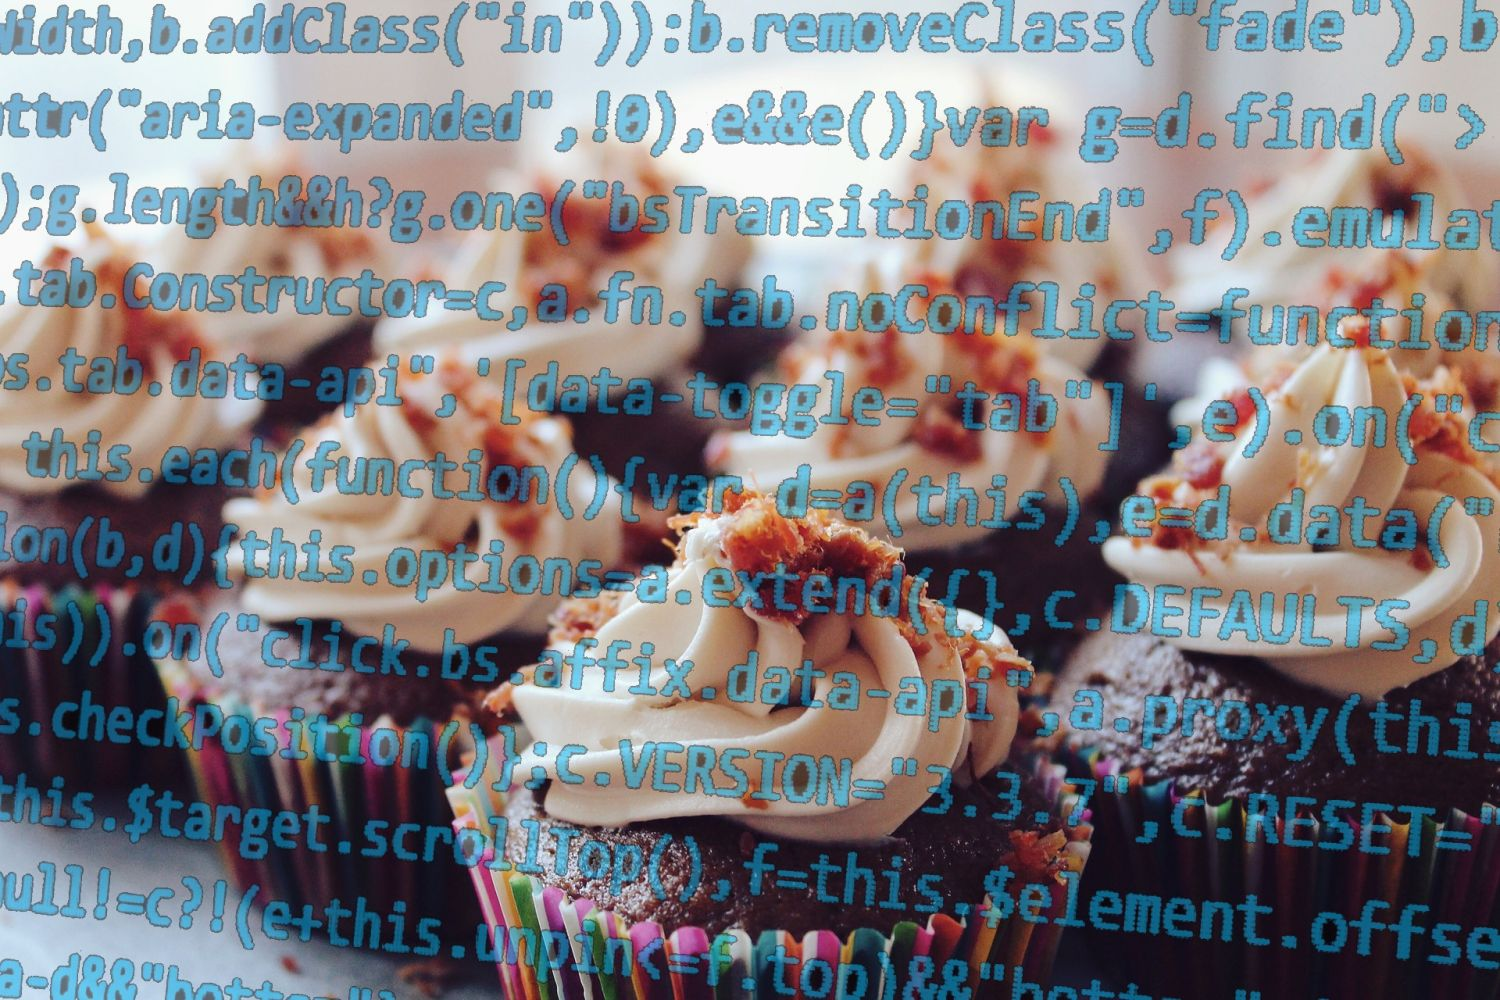 Coding and Cake image